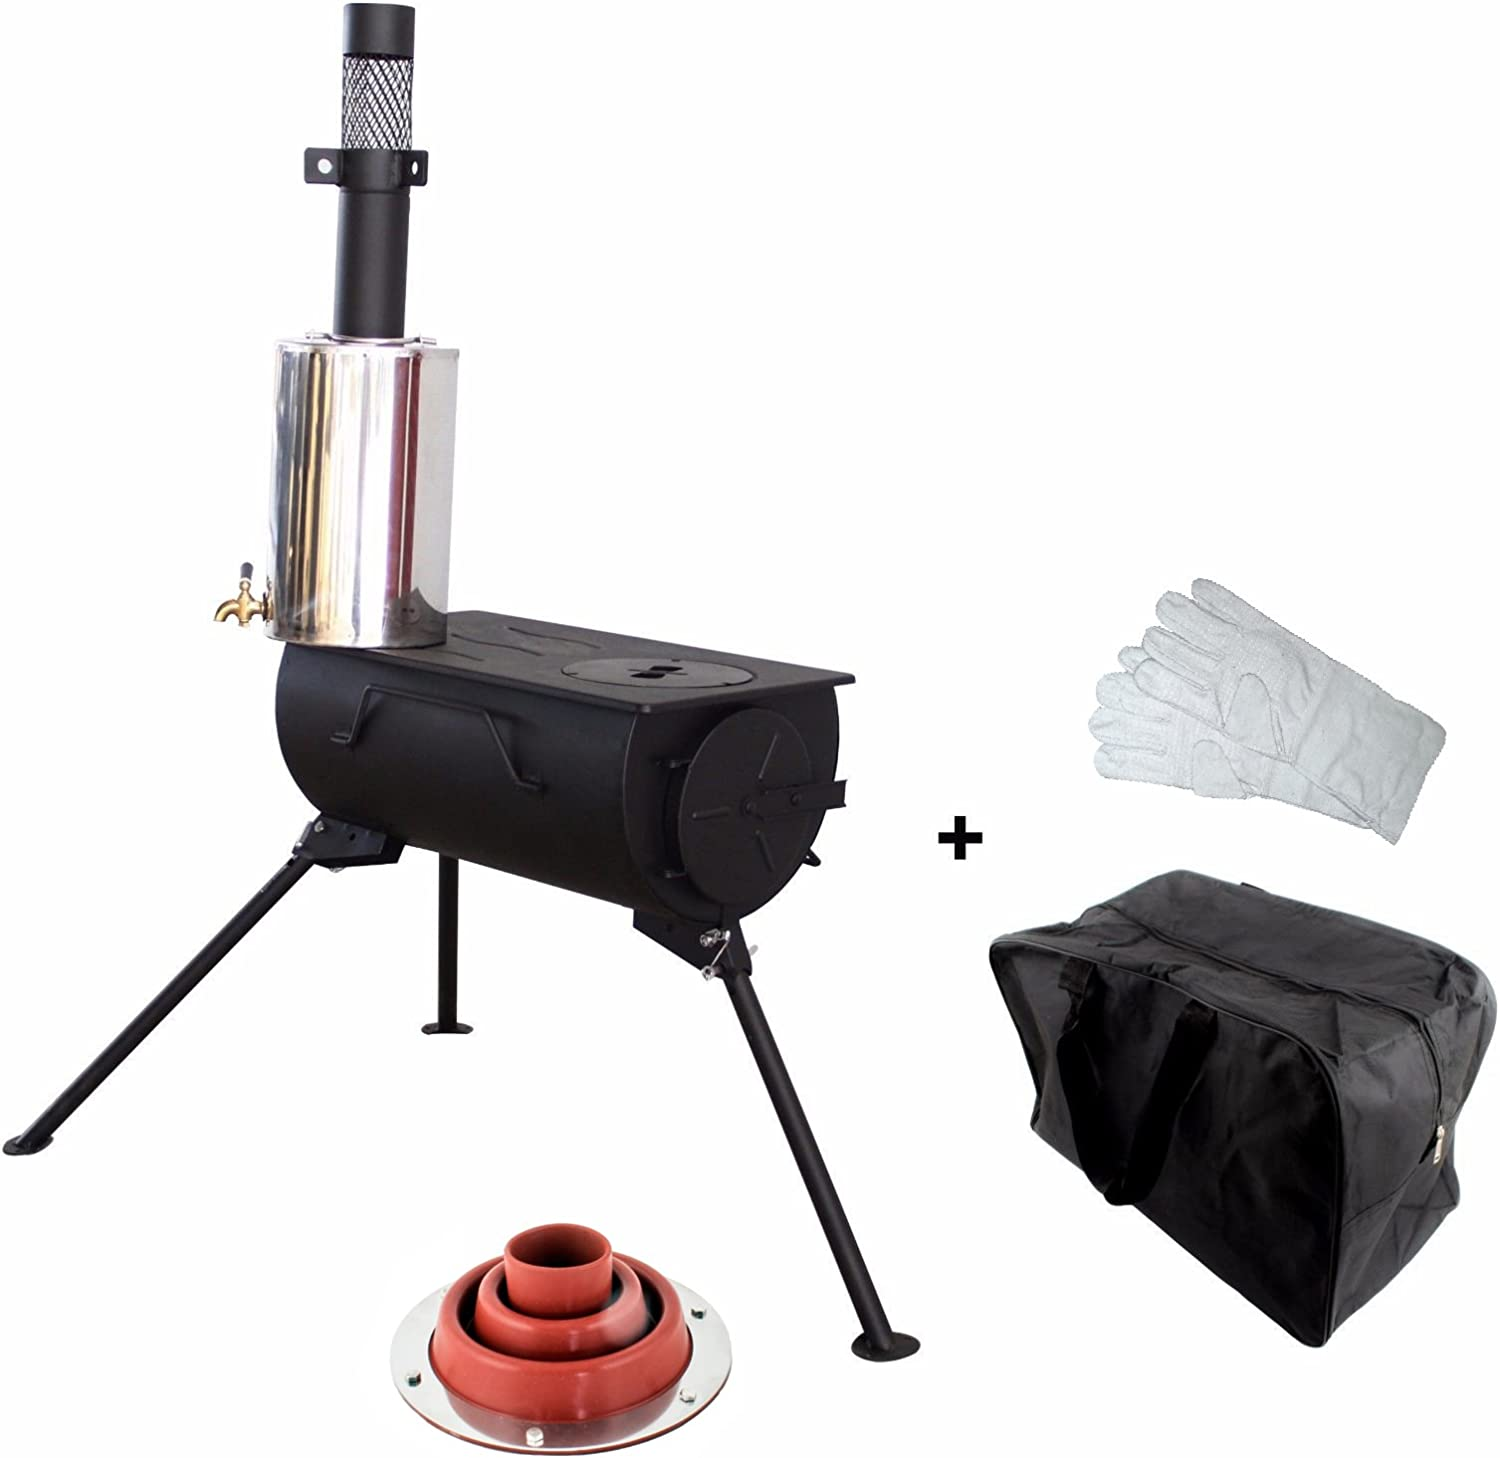 NJ Comfort Wood Burning Stove Portable Camping Cooker + 3L Water Heater and Flashing Kit